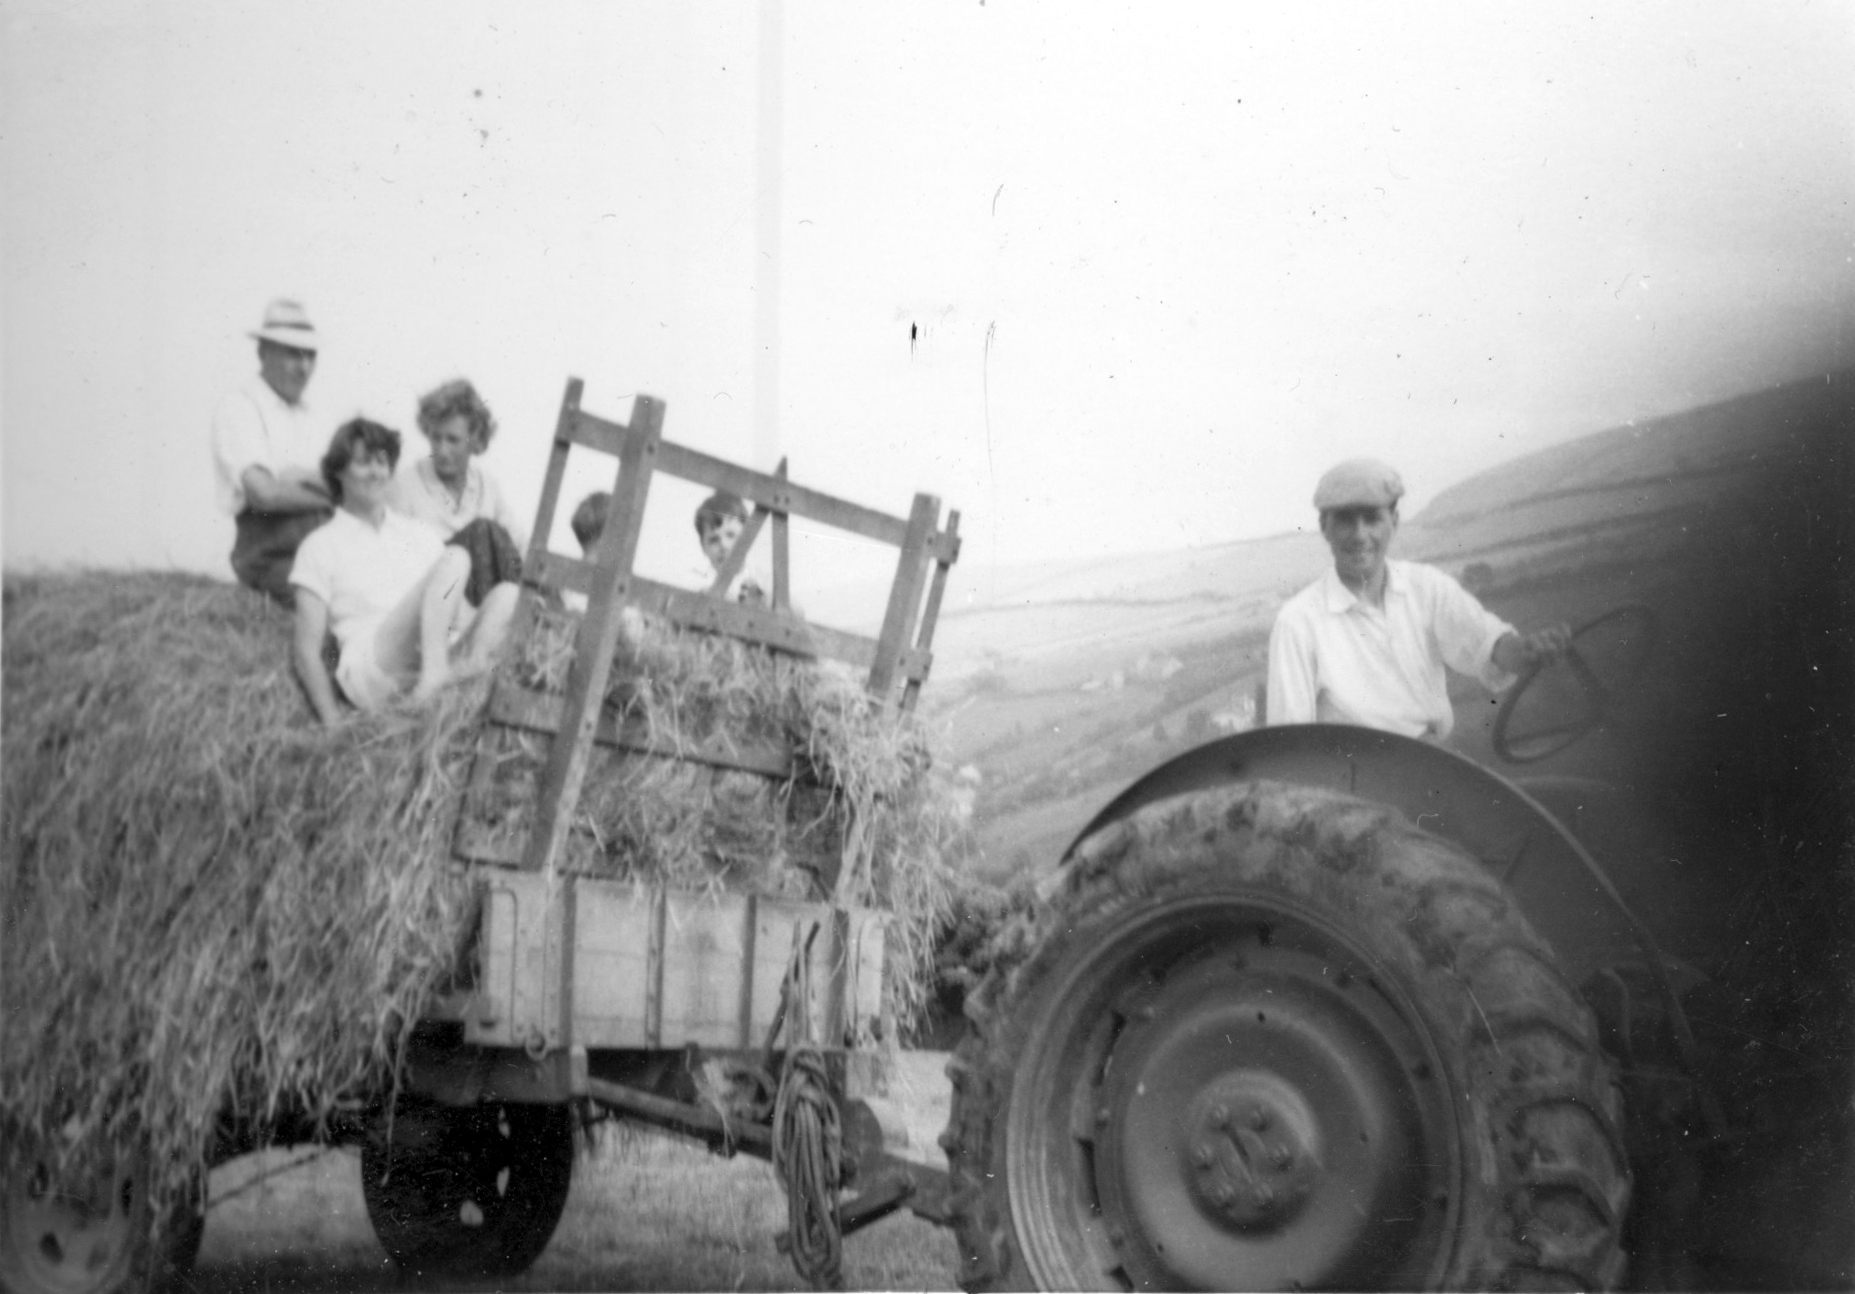 Hay cart 1959 - kind permission of Emma Tucker